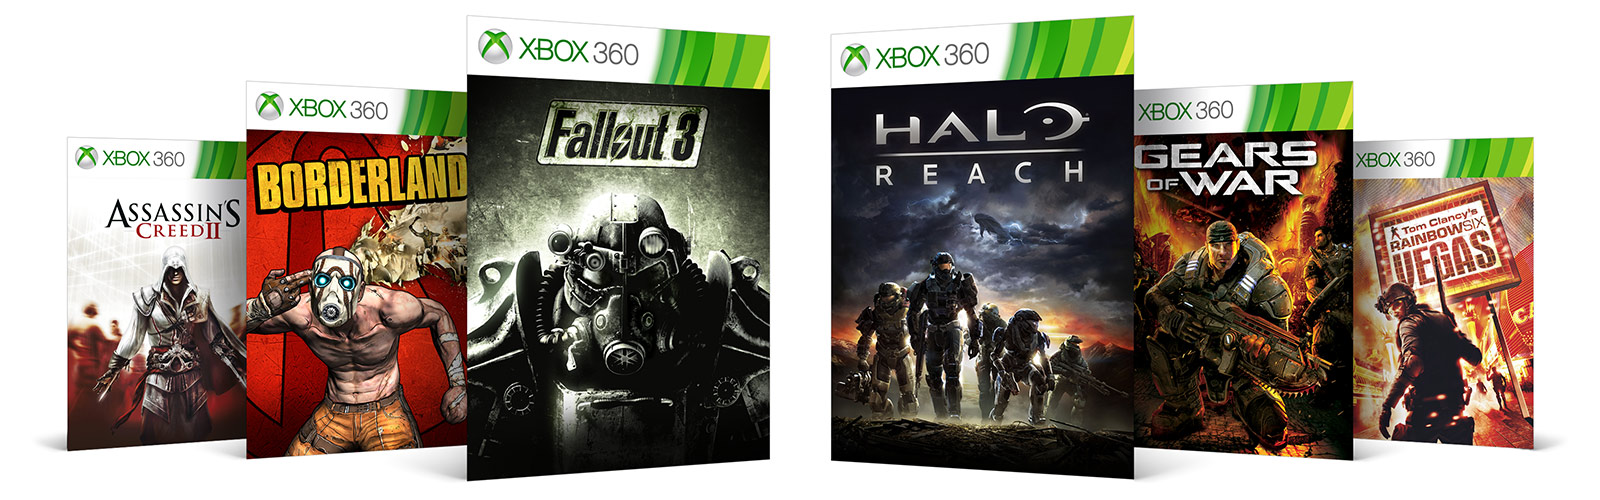 Xbox 360 games - Assassins Creed 2 Borderlands Fallout 3 Halo Reach Gears of War Rainbow Six Las Vegas box shots